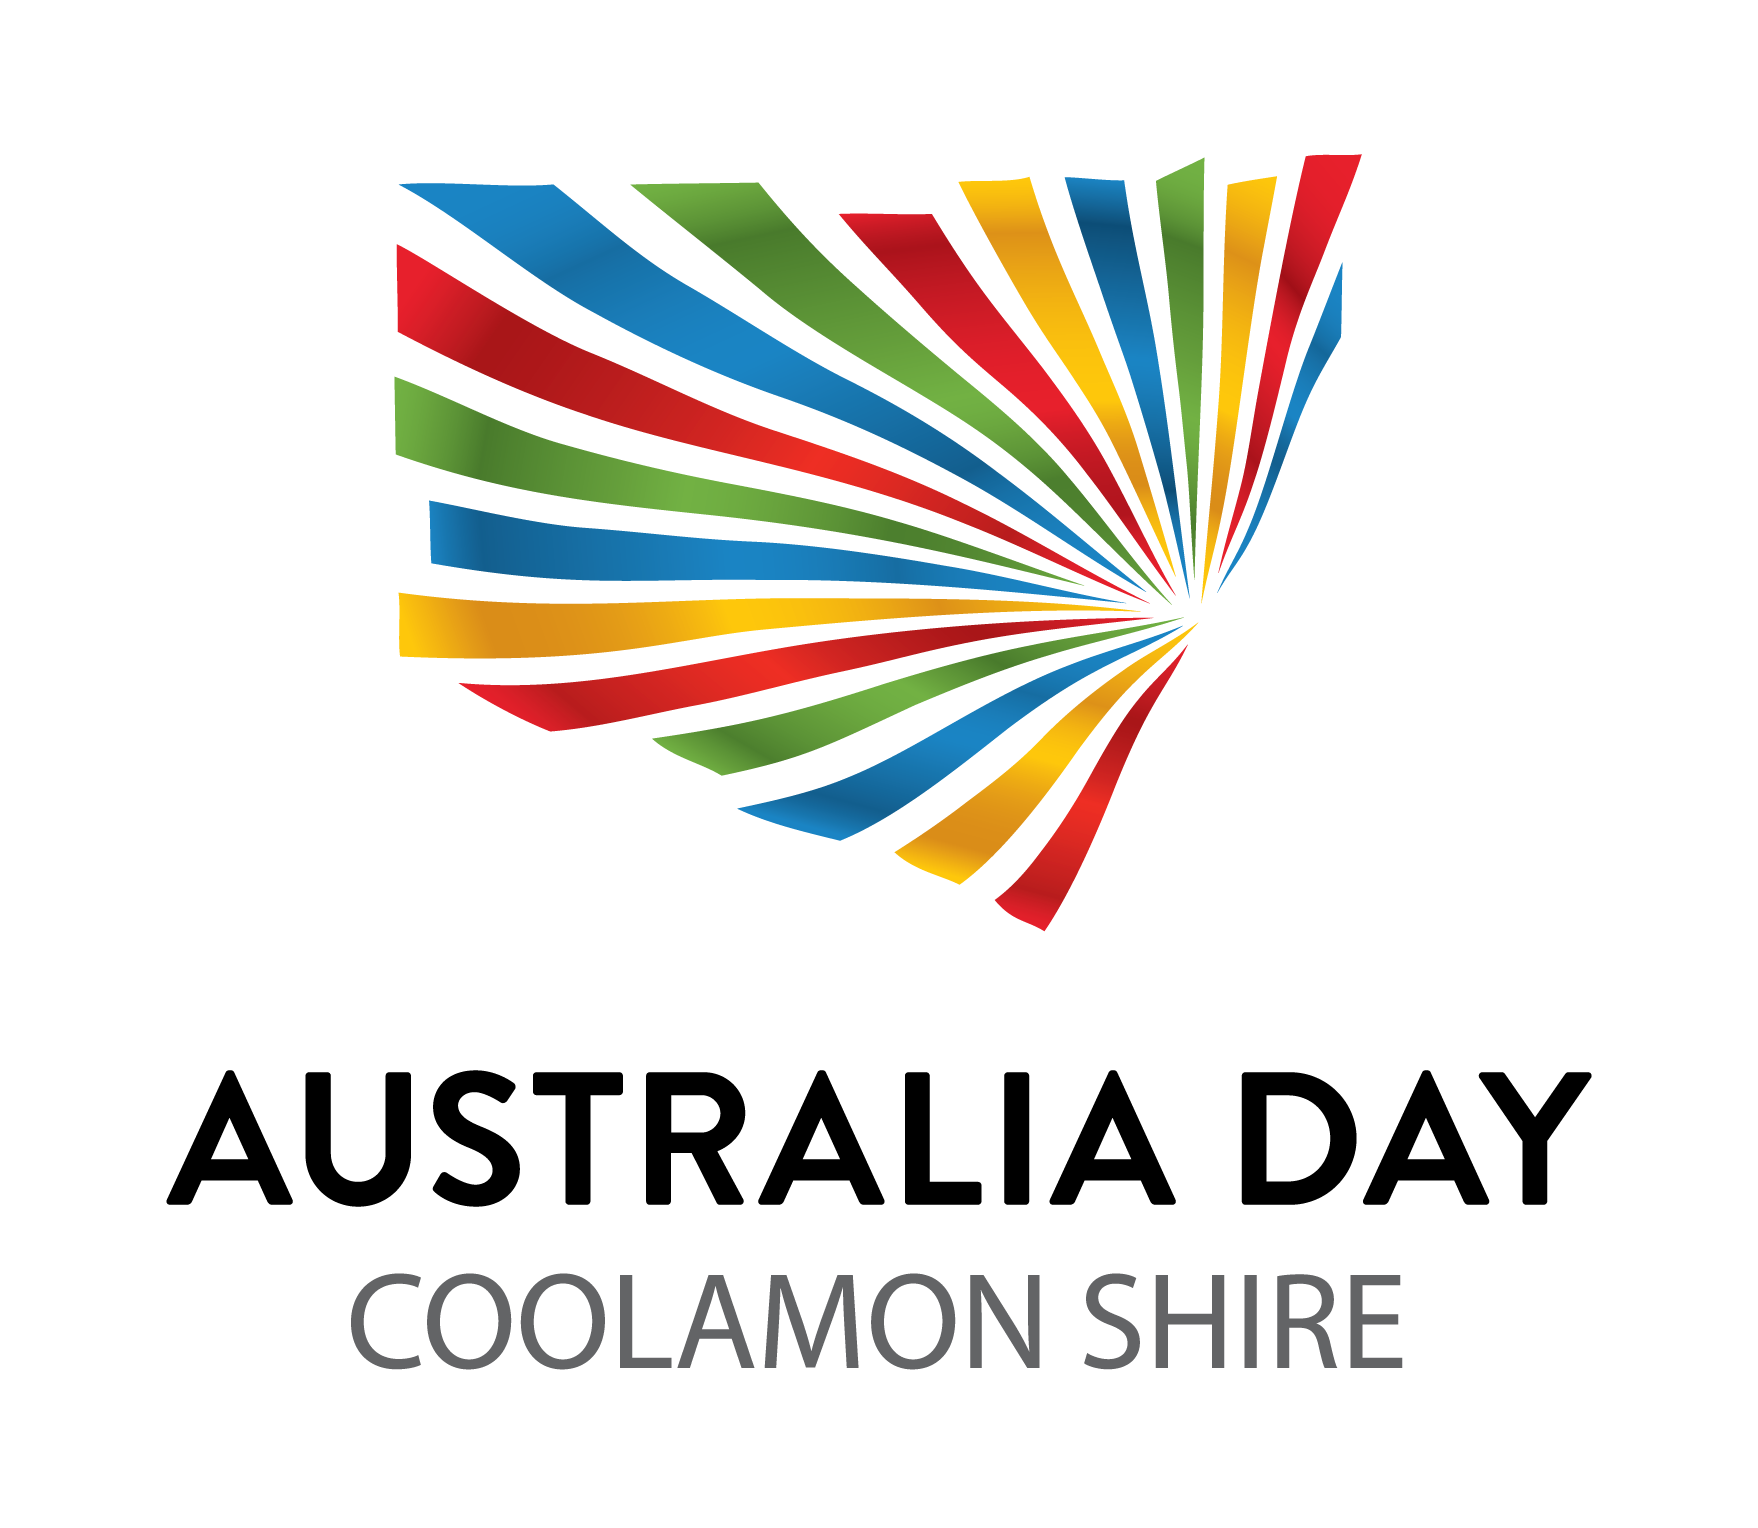 CS0097_AUS DAY_OL_COOLAMON_shire.png